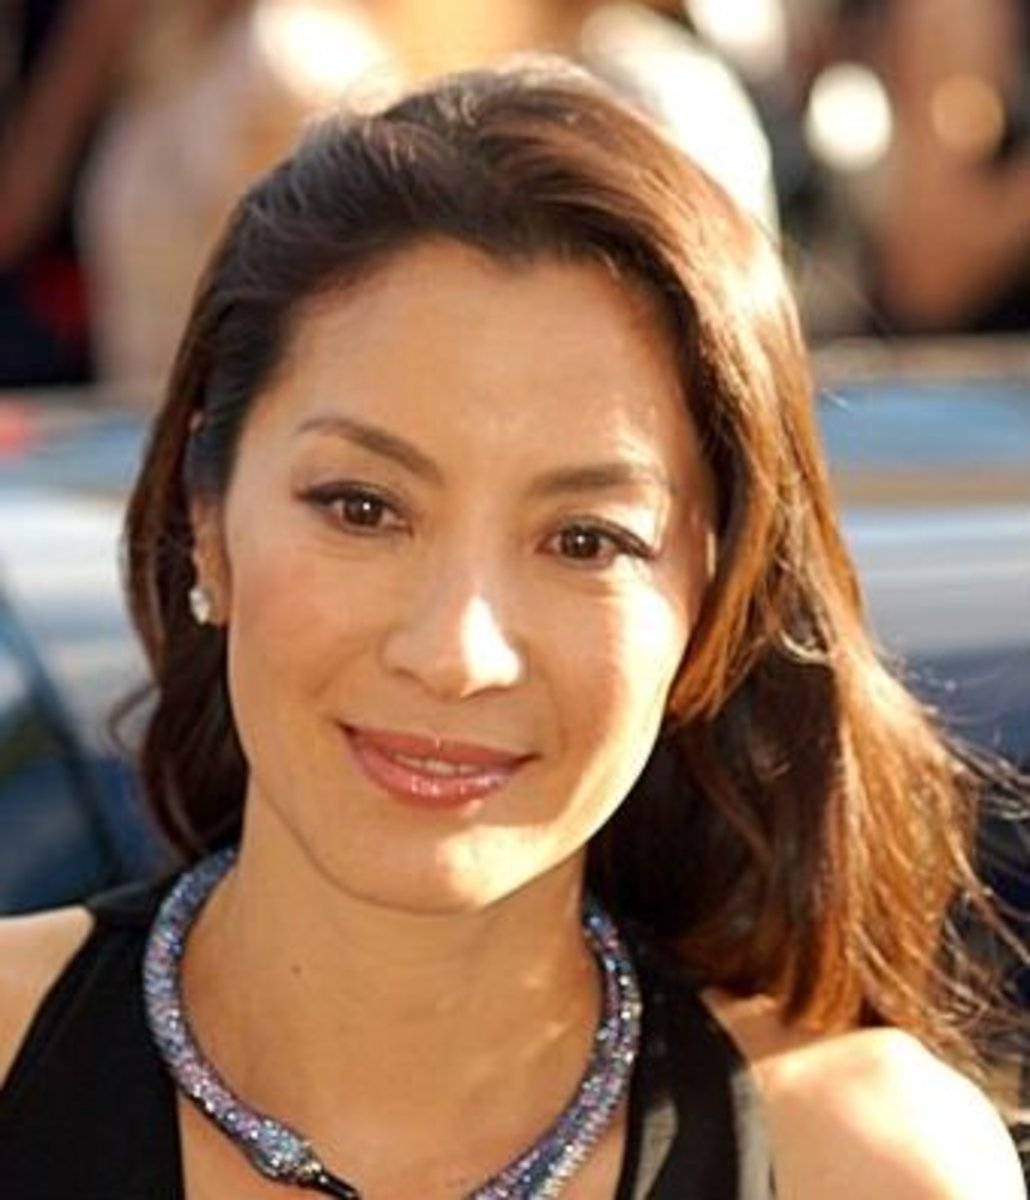 Michelle Yeoh at Cannes in 2007.